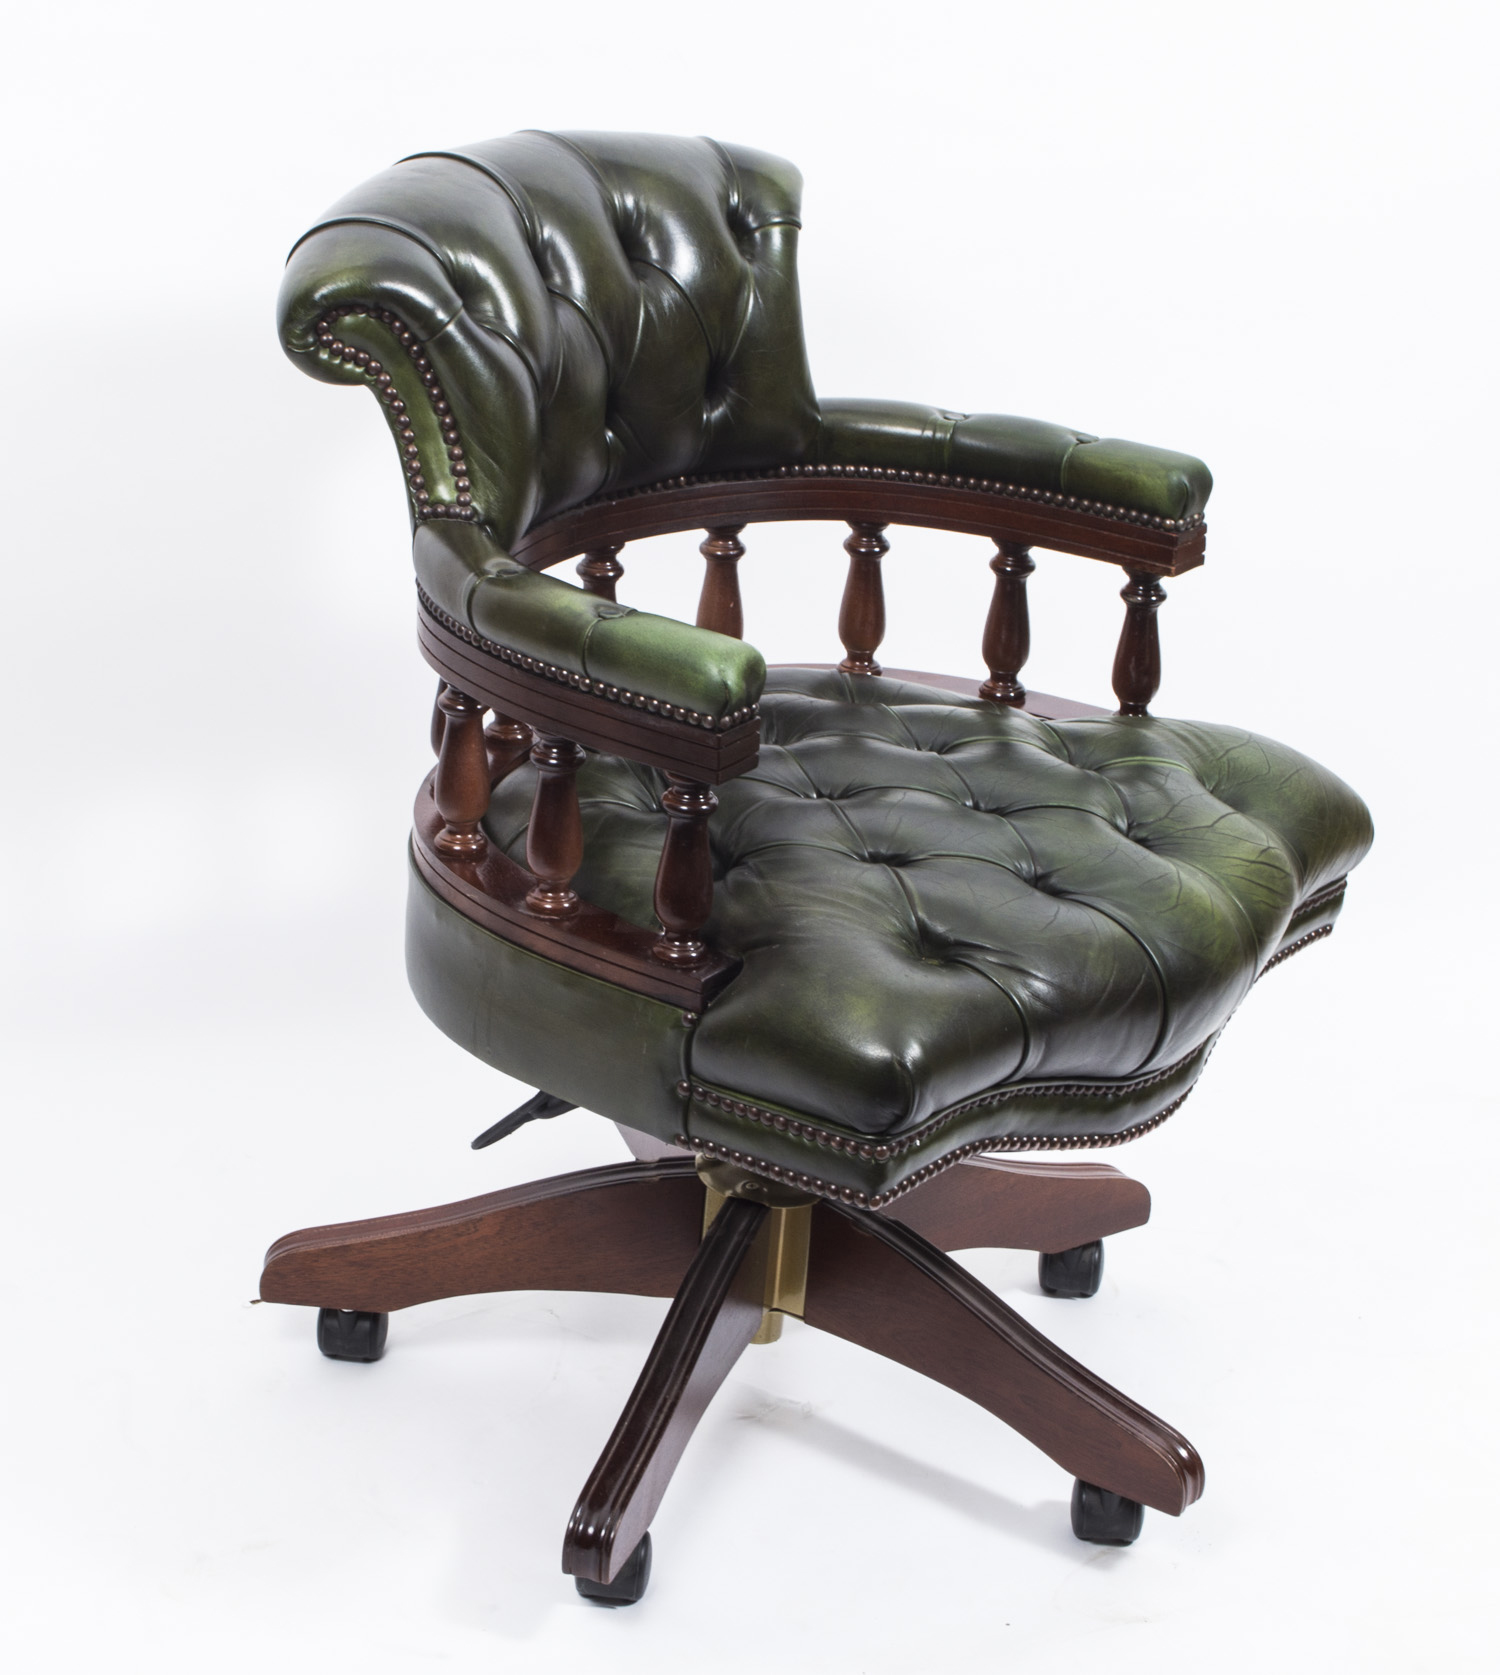 English Hand Made Leather Captains Desk Chair Olive Green | Ref. No. 02839